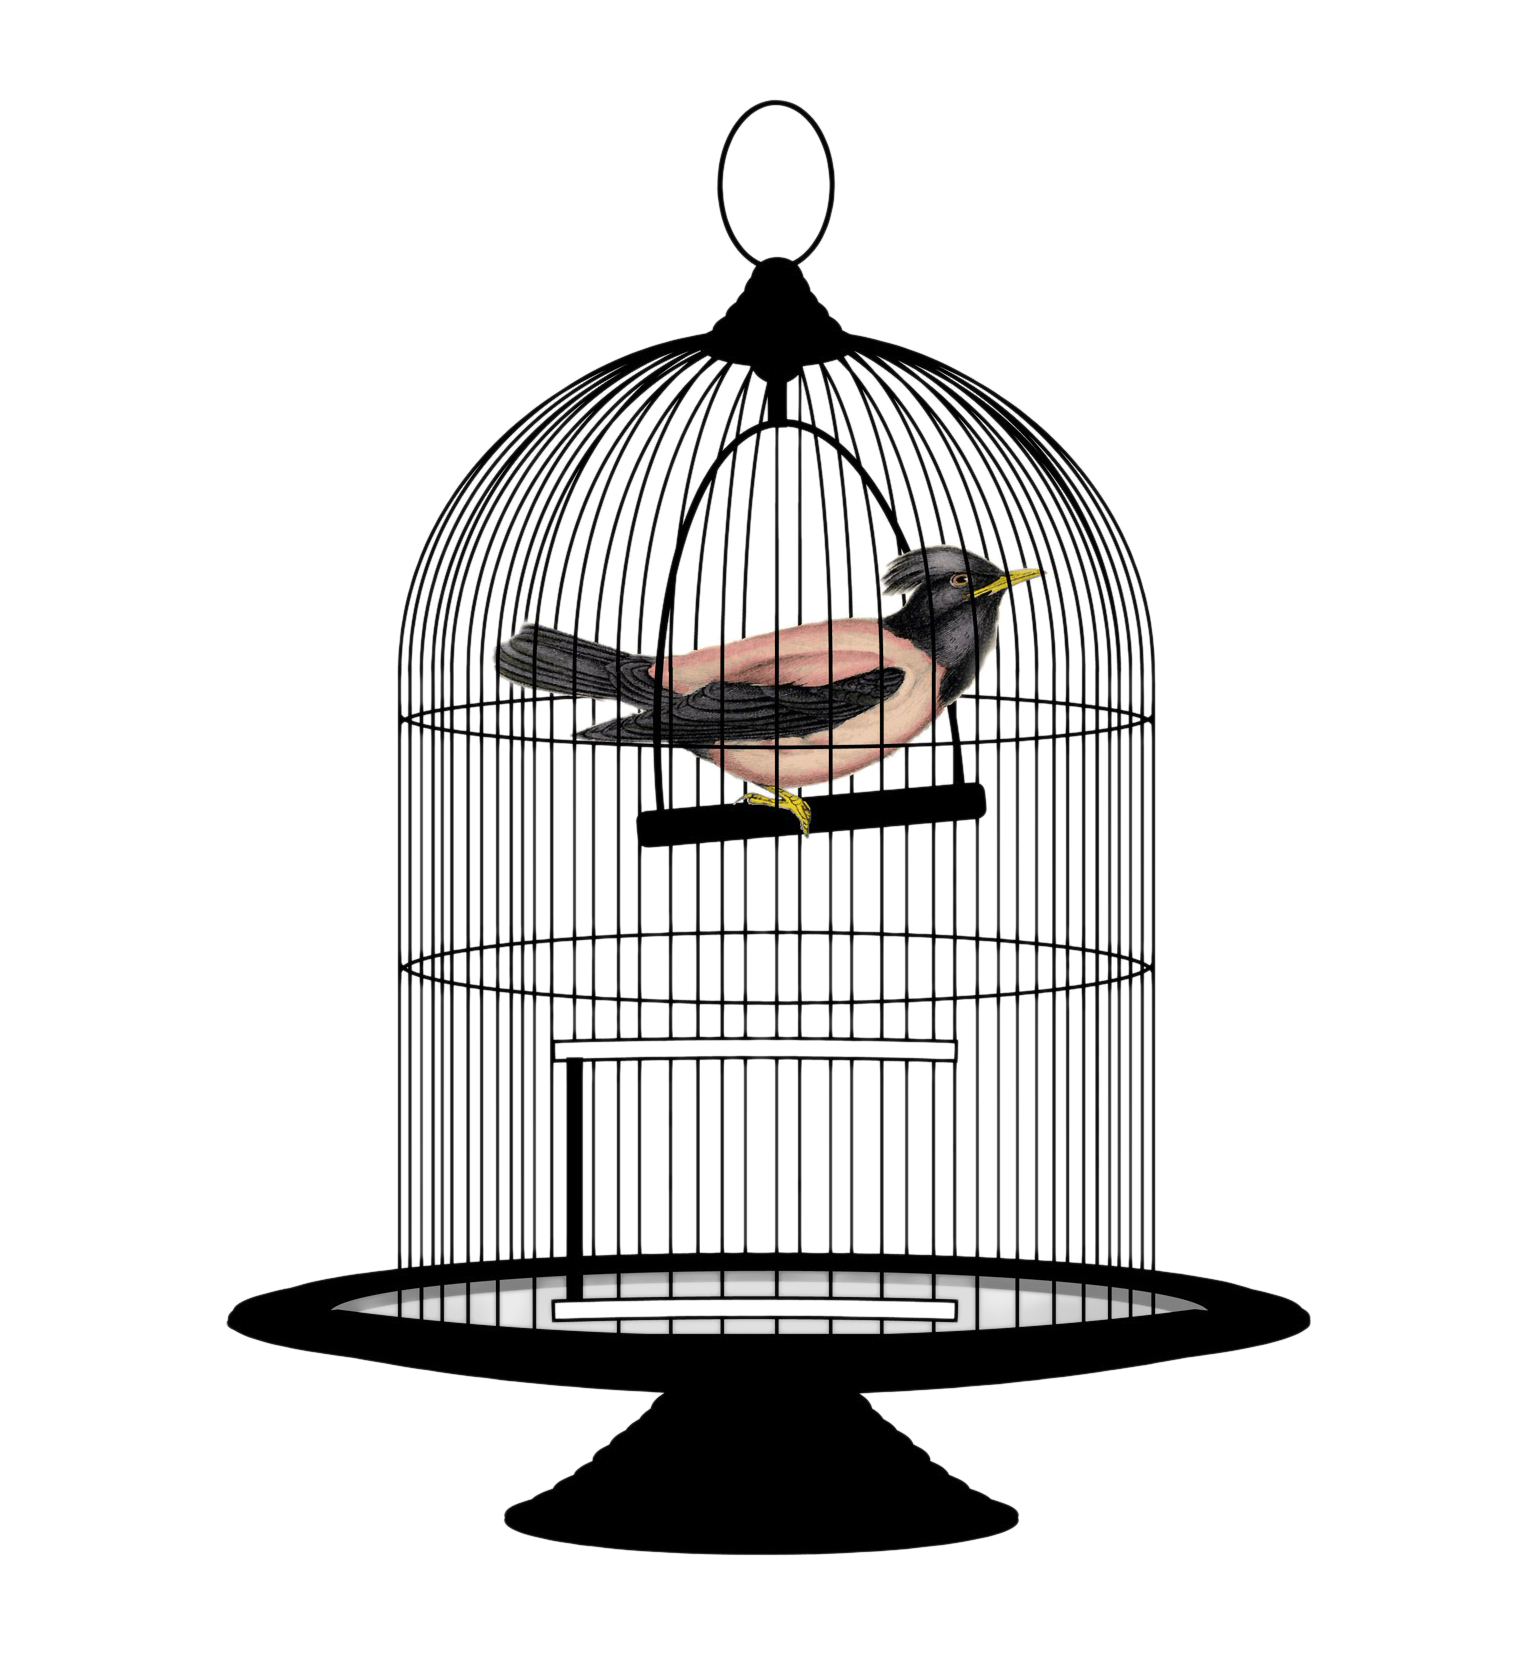 Bird cage clipart png. Image purepng free transparent